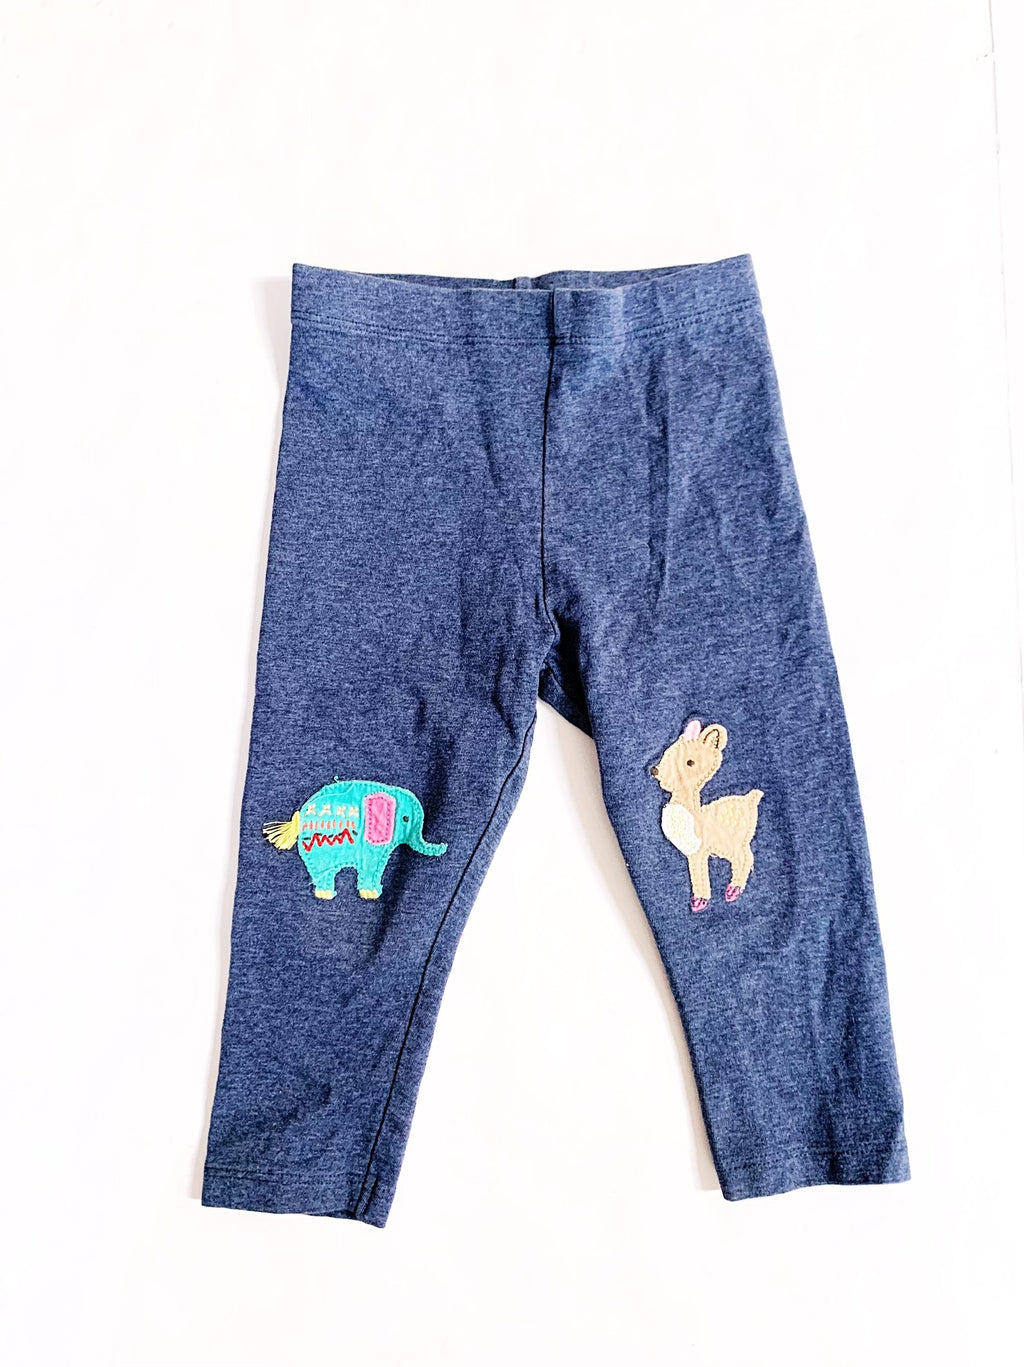 Next leggings size 12-18m-Fresh Kids Inc.